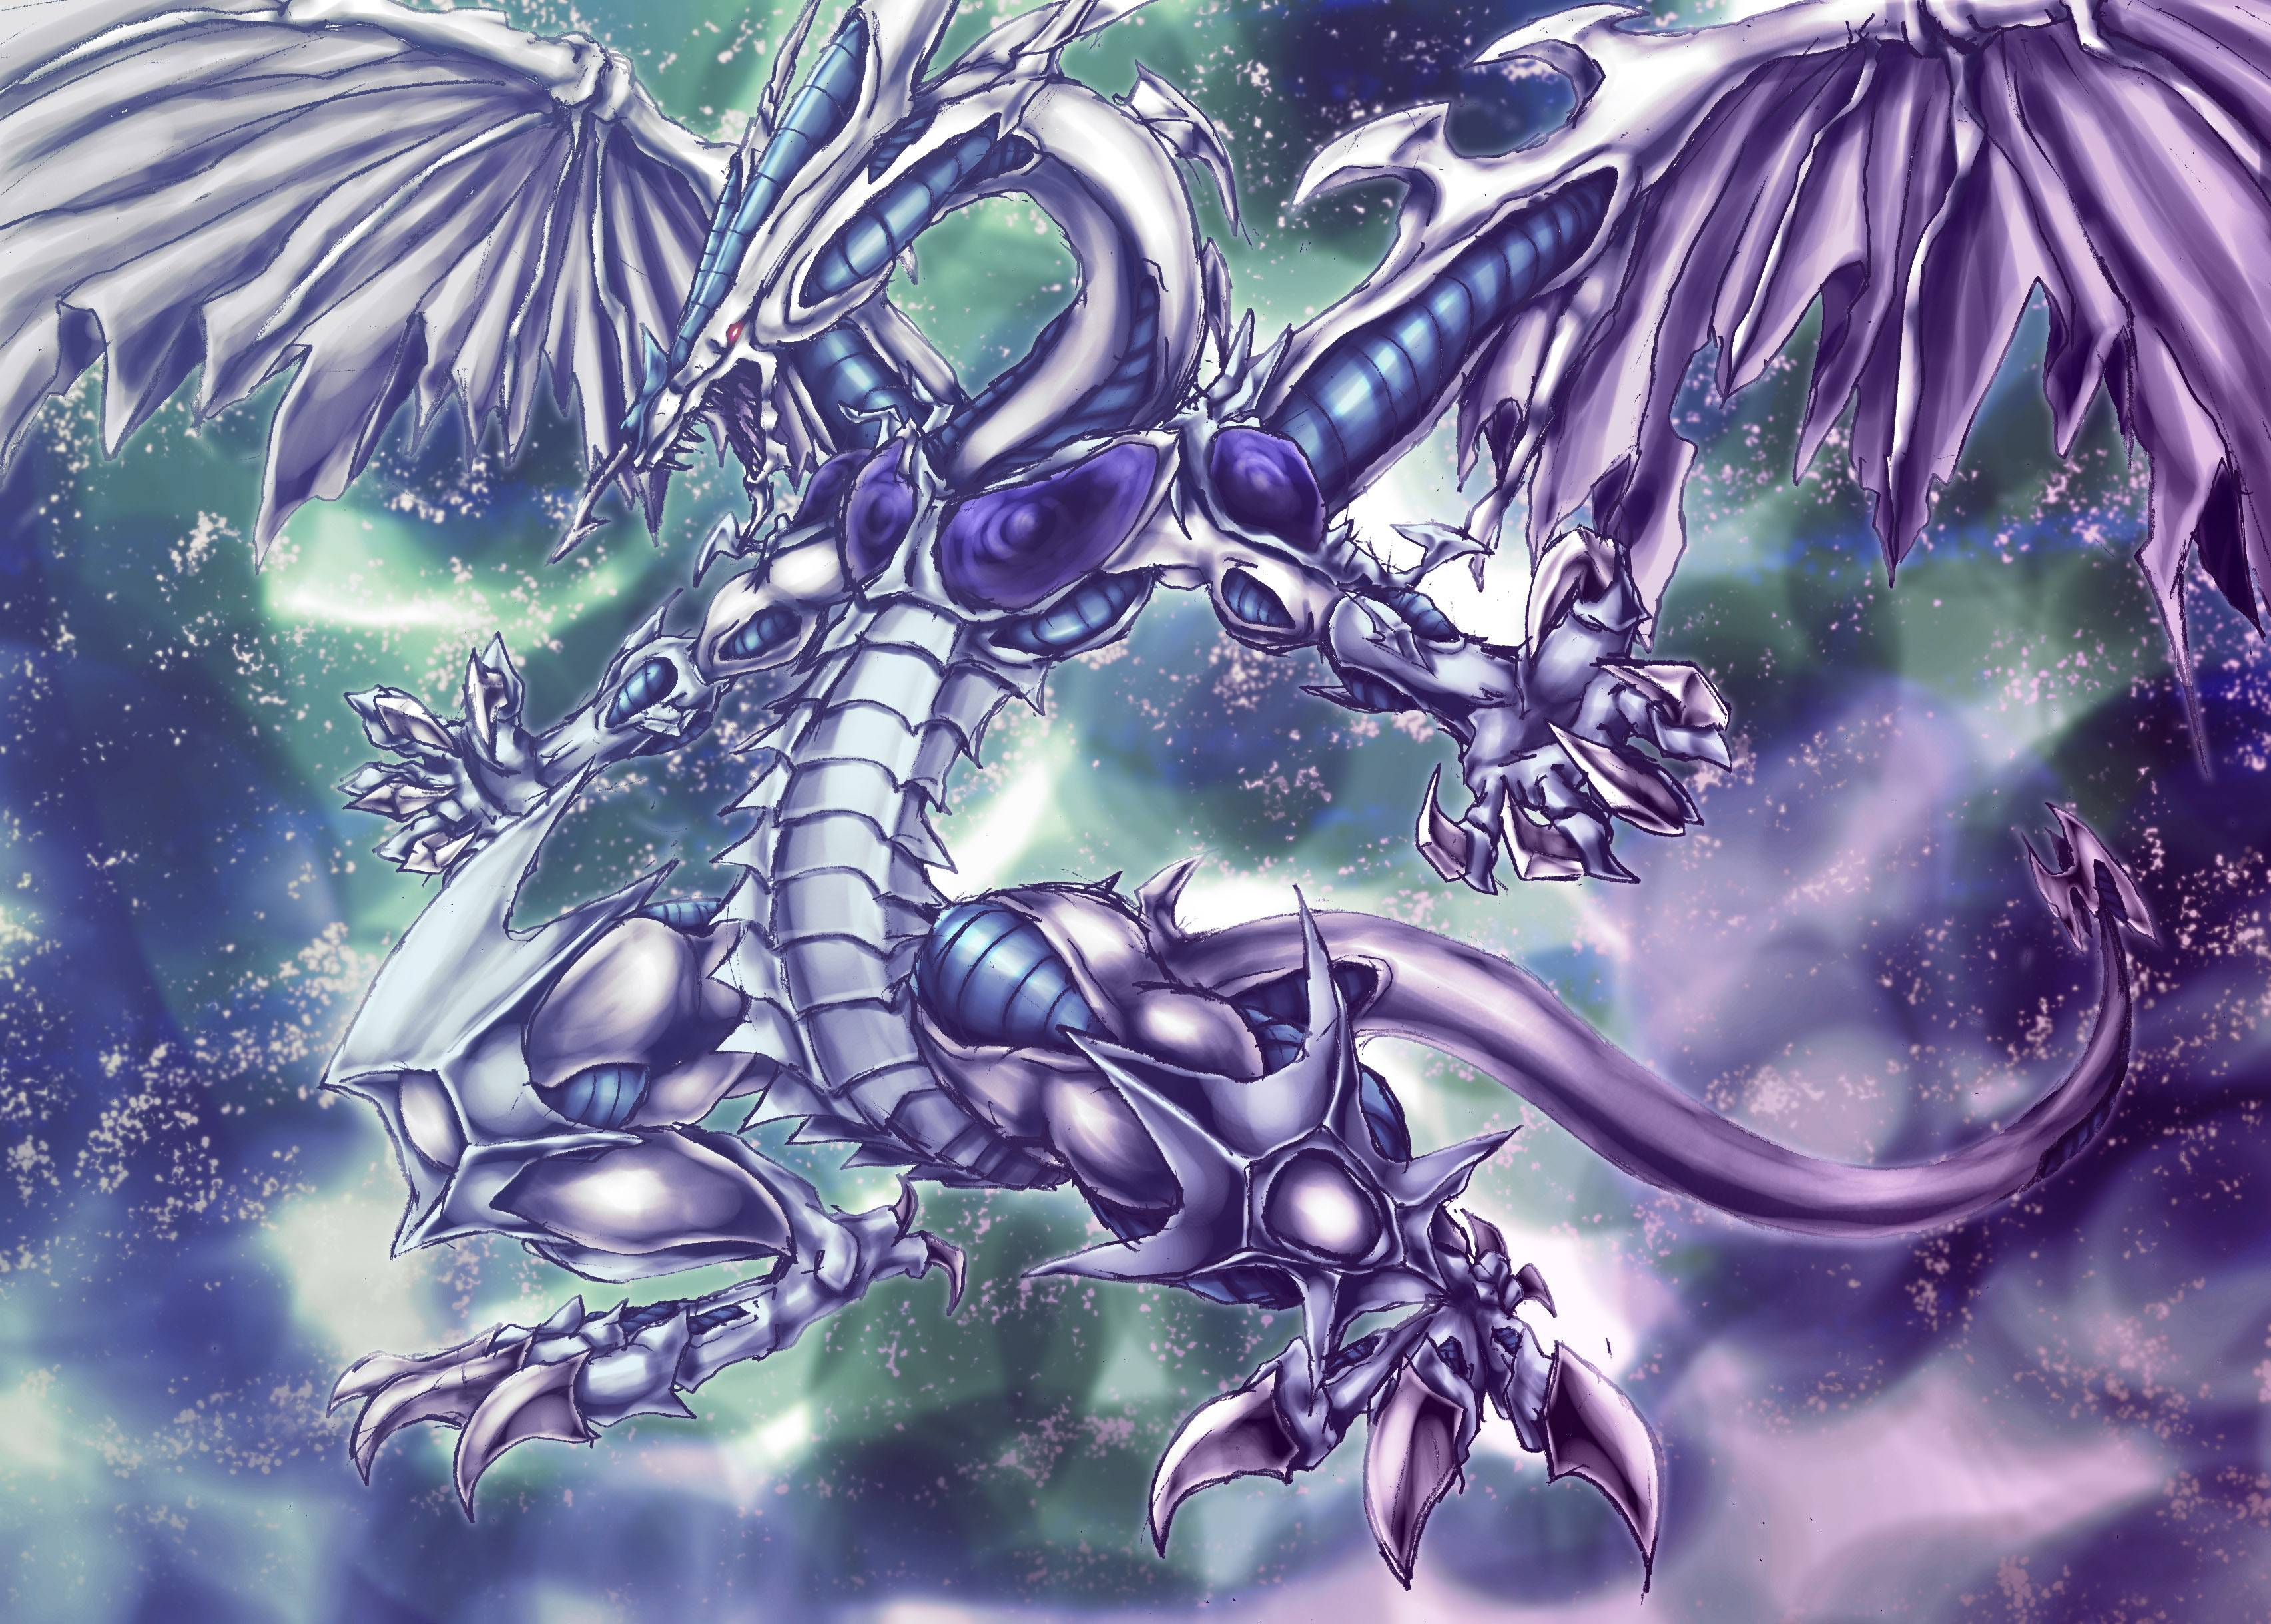 stardust dragon wallpaper 111963 high definition wallpapers suwall